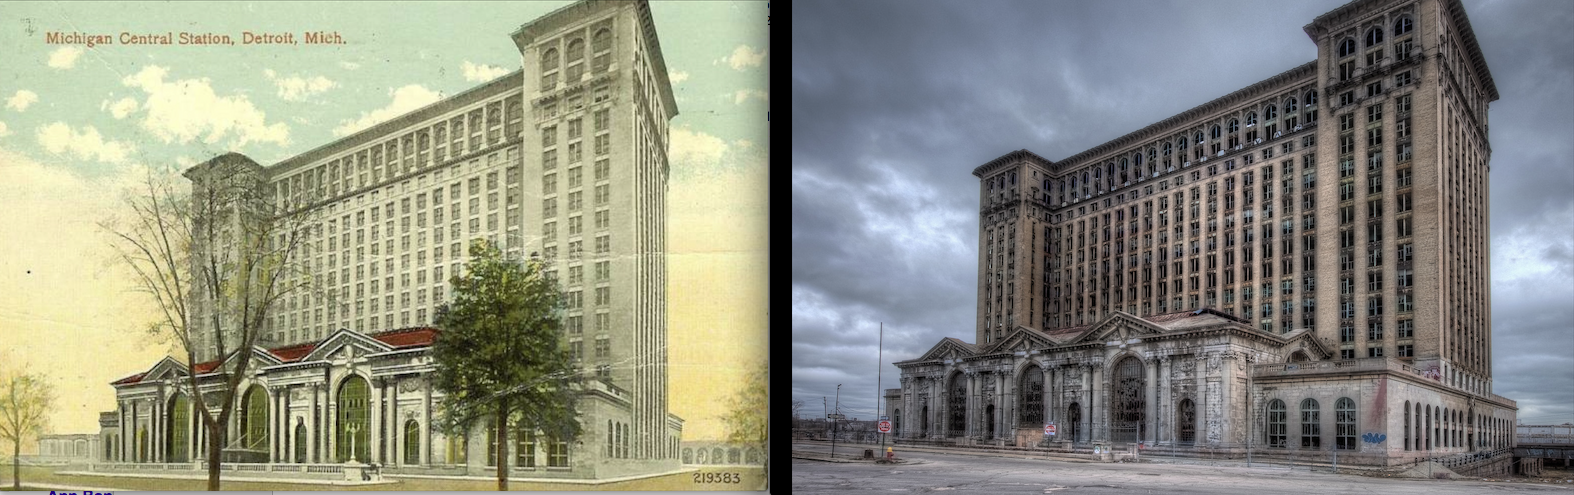 Michigan Central Station, Detroit, MI - bustling transportation hub for decades